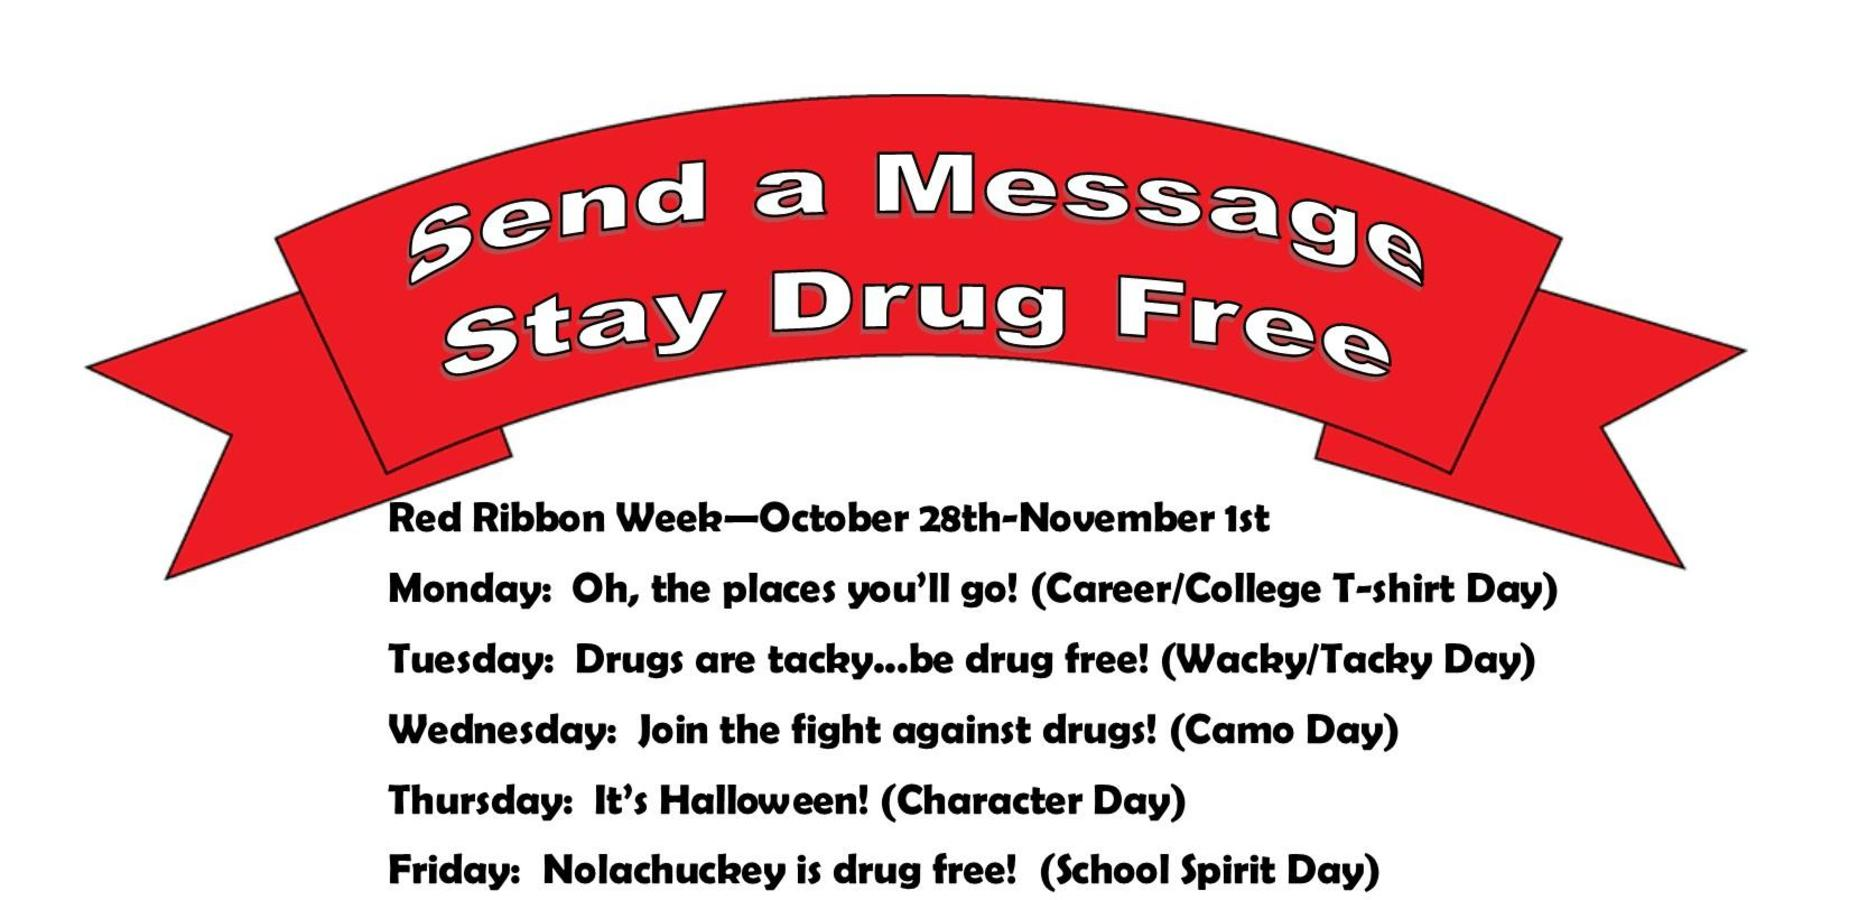 Red ribbon week October 28th to November 1st